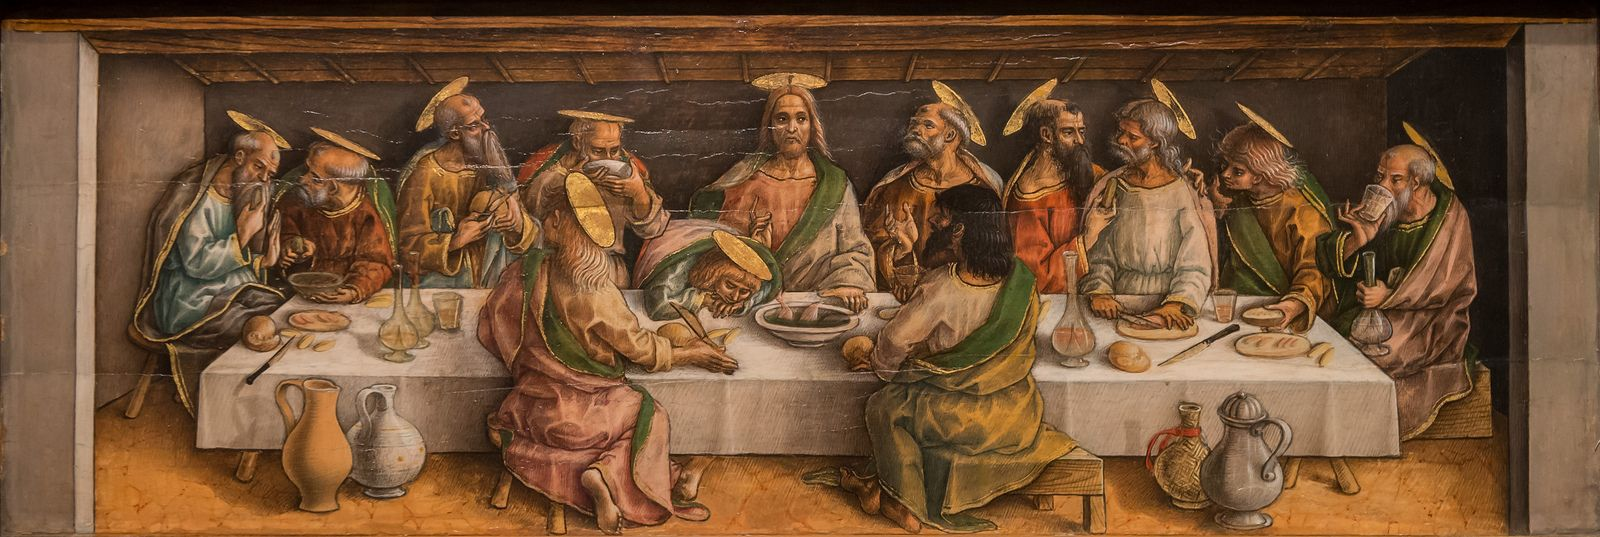 The Last Supper\